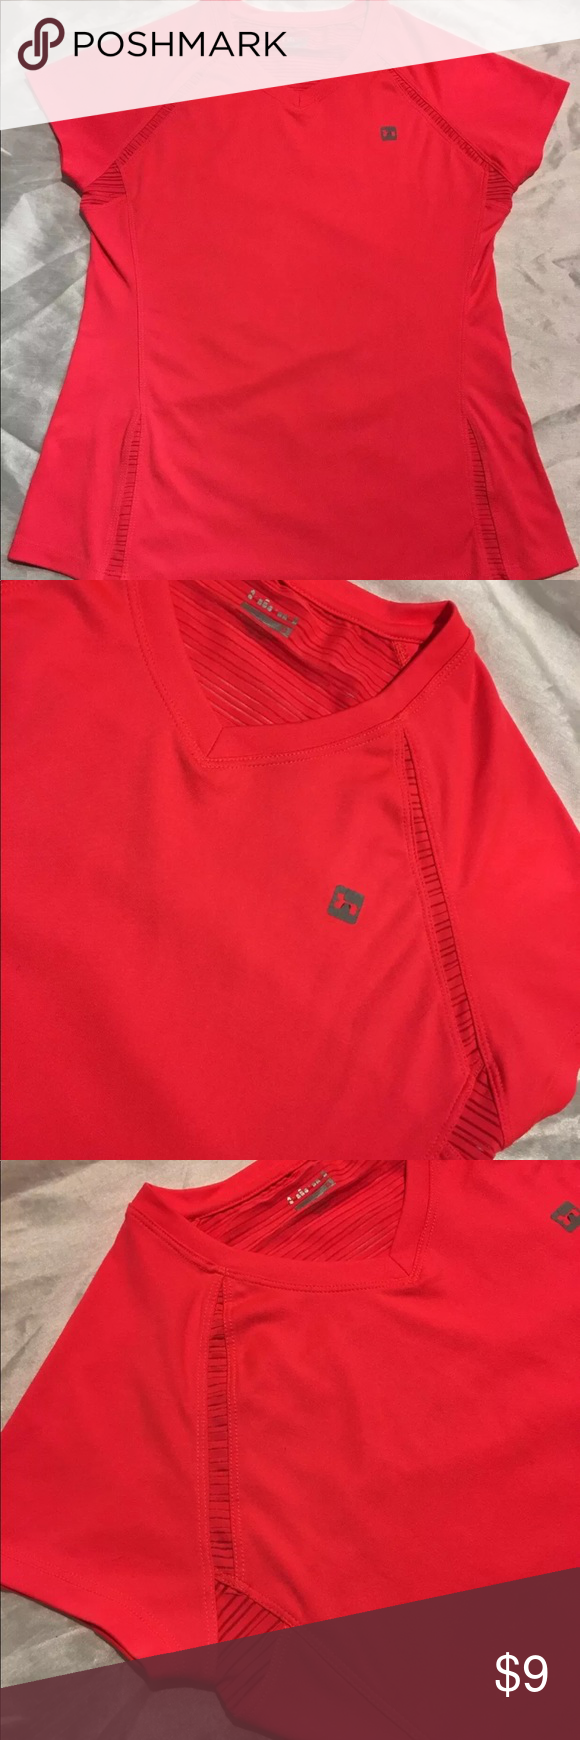 Hind Athletic Top Short Sleeve V-neck Size Small